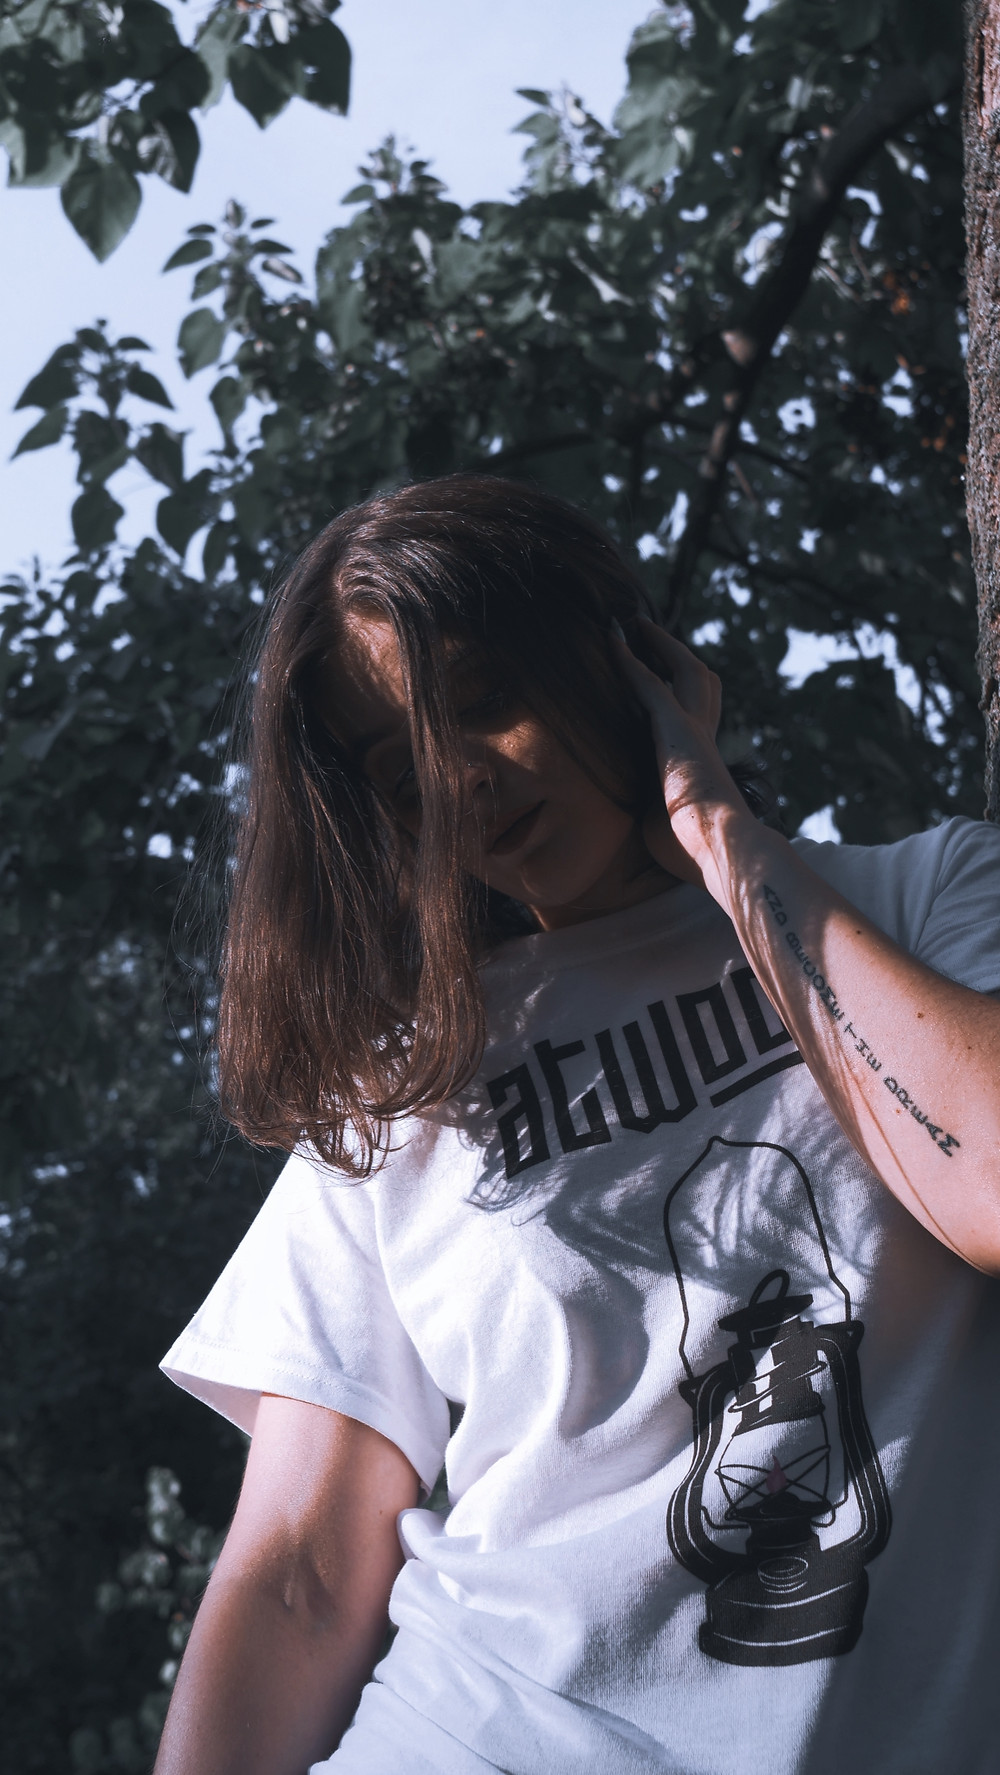 model posing whilst wearing Atwood white band t shirt with trees in background